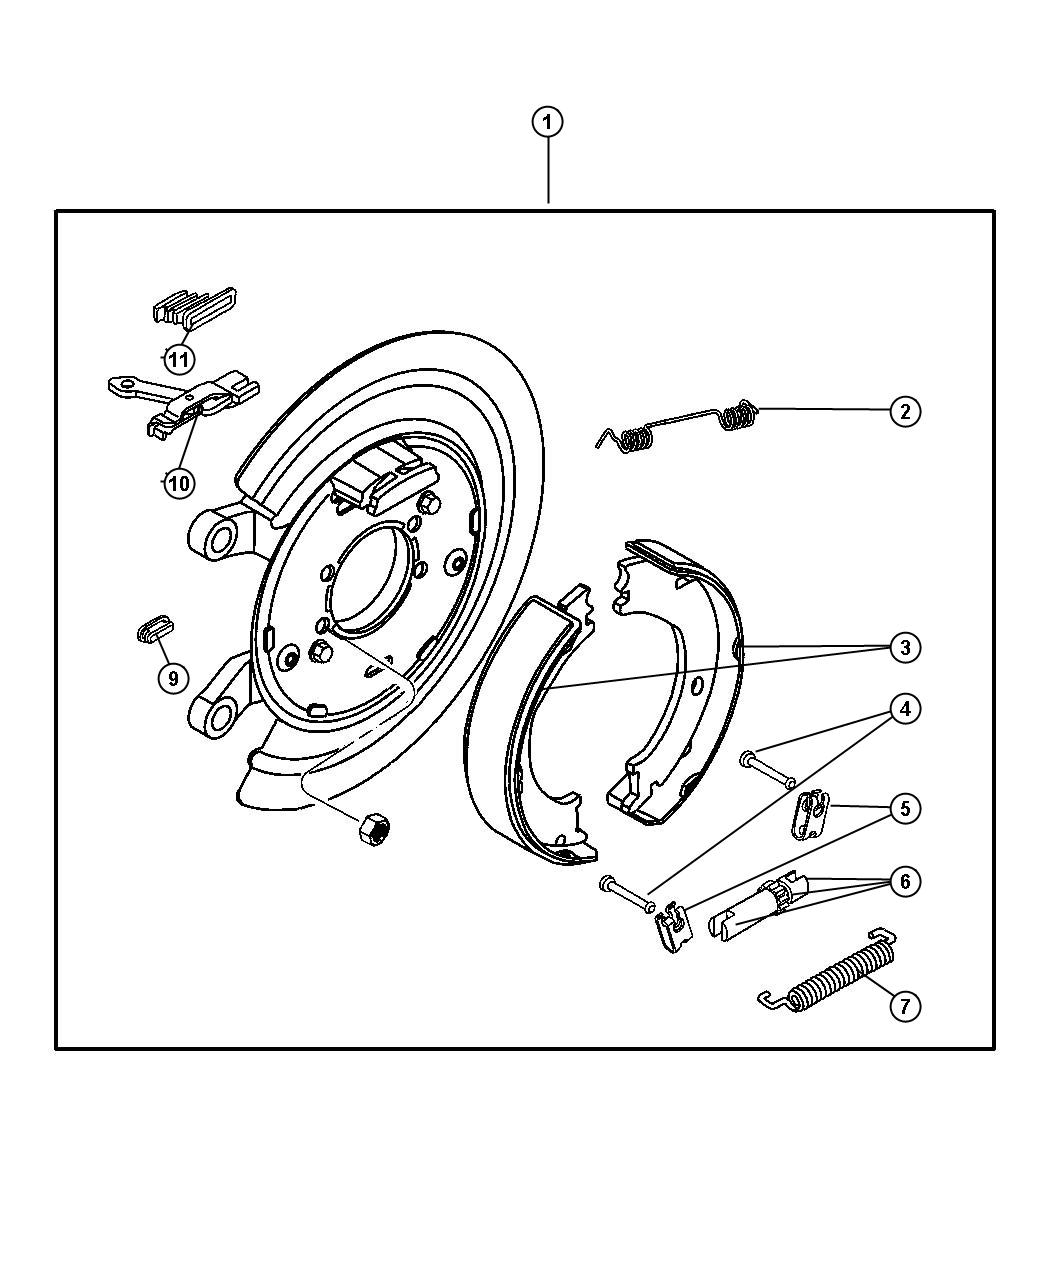 232211080657 moreover ShowAssembly furthermore 231694855555 also ShowAssembly further ShowAssembly. on genuine dodge parts oem